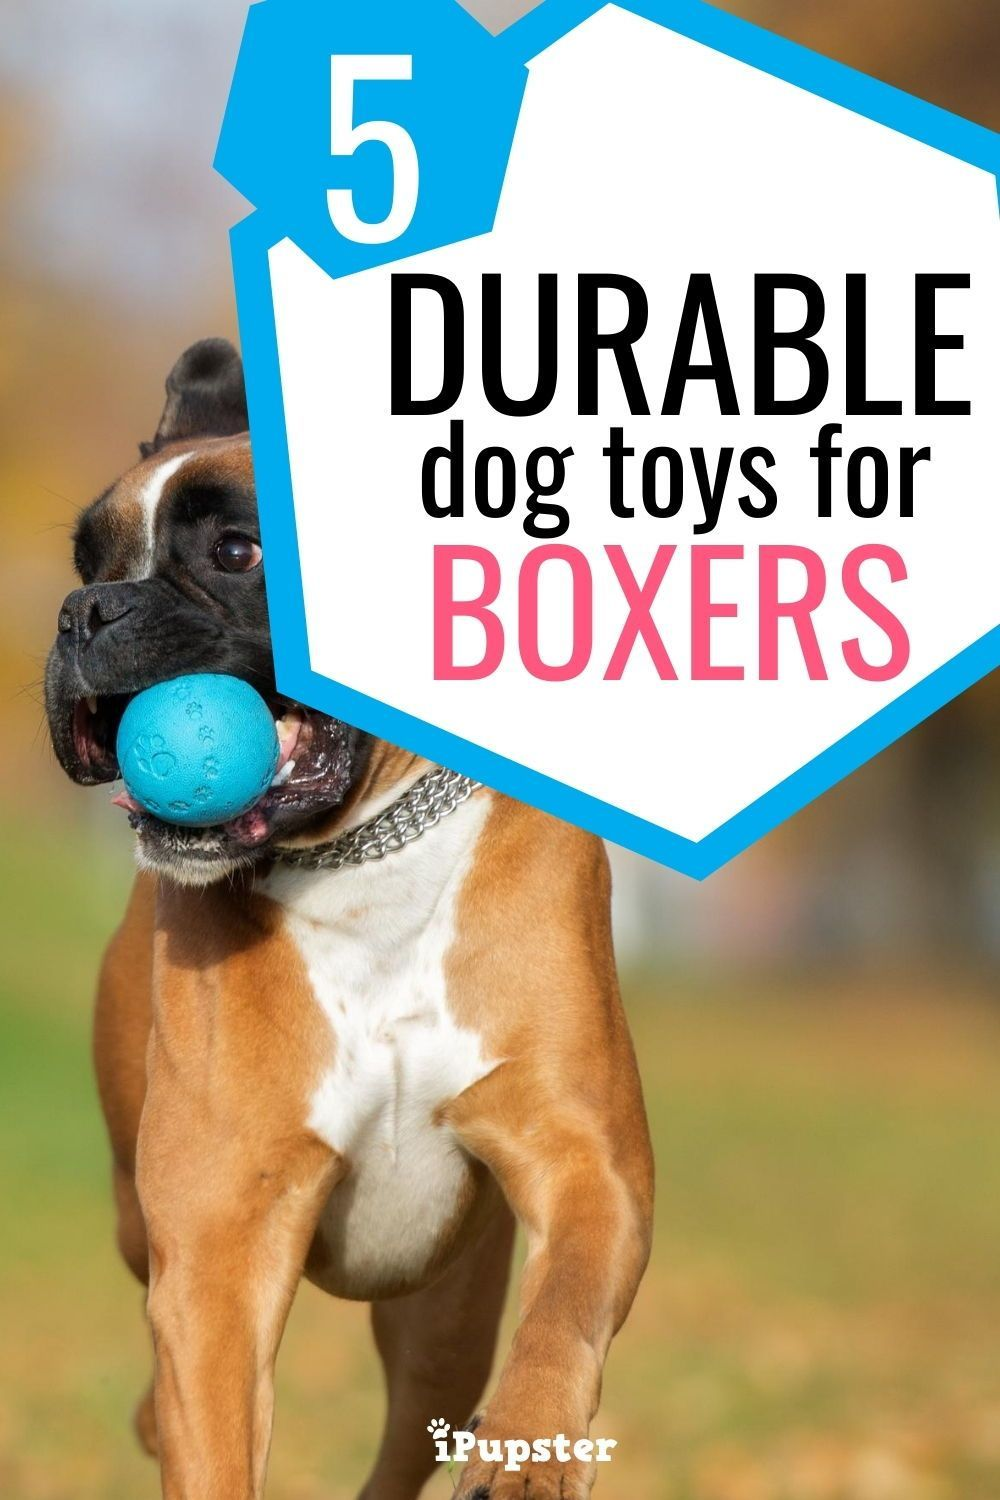 Best Dog Toys For Boxers 6 Durable Fun Boxer Dog Toys In 2020 Best Dog Toys Dog Toys Durable Dog Toys